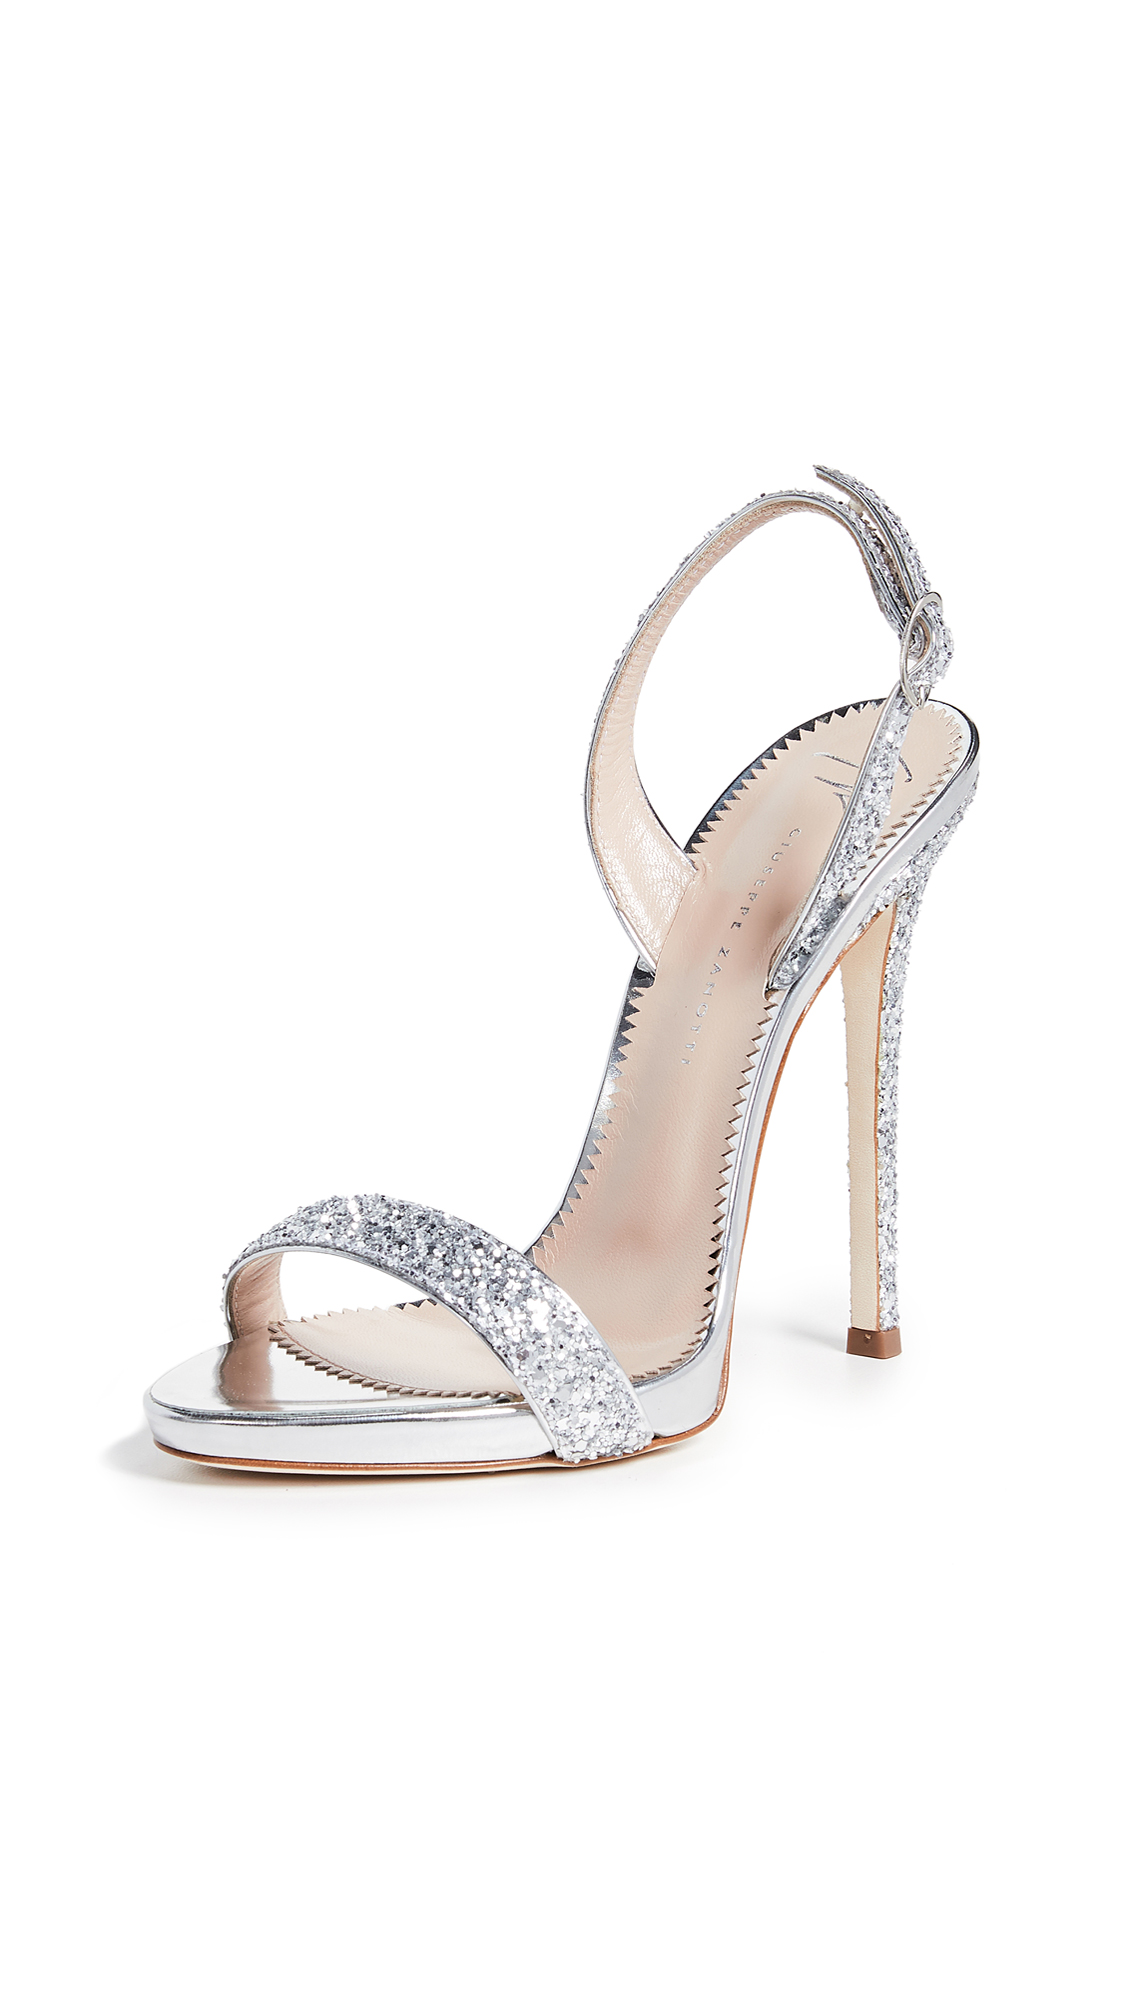 Coline Glittered Metallic Leather Slingback Sandals